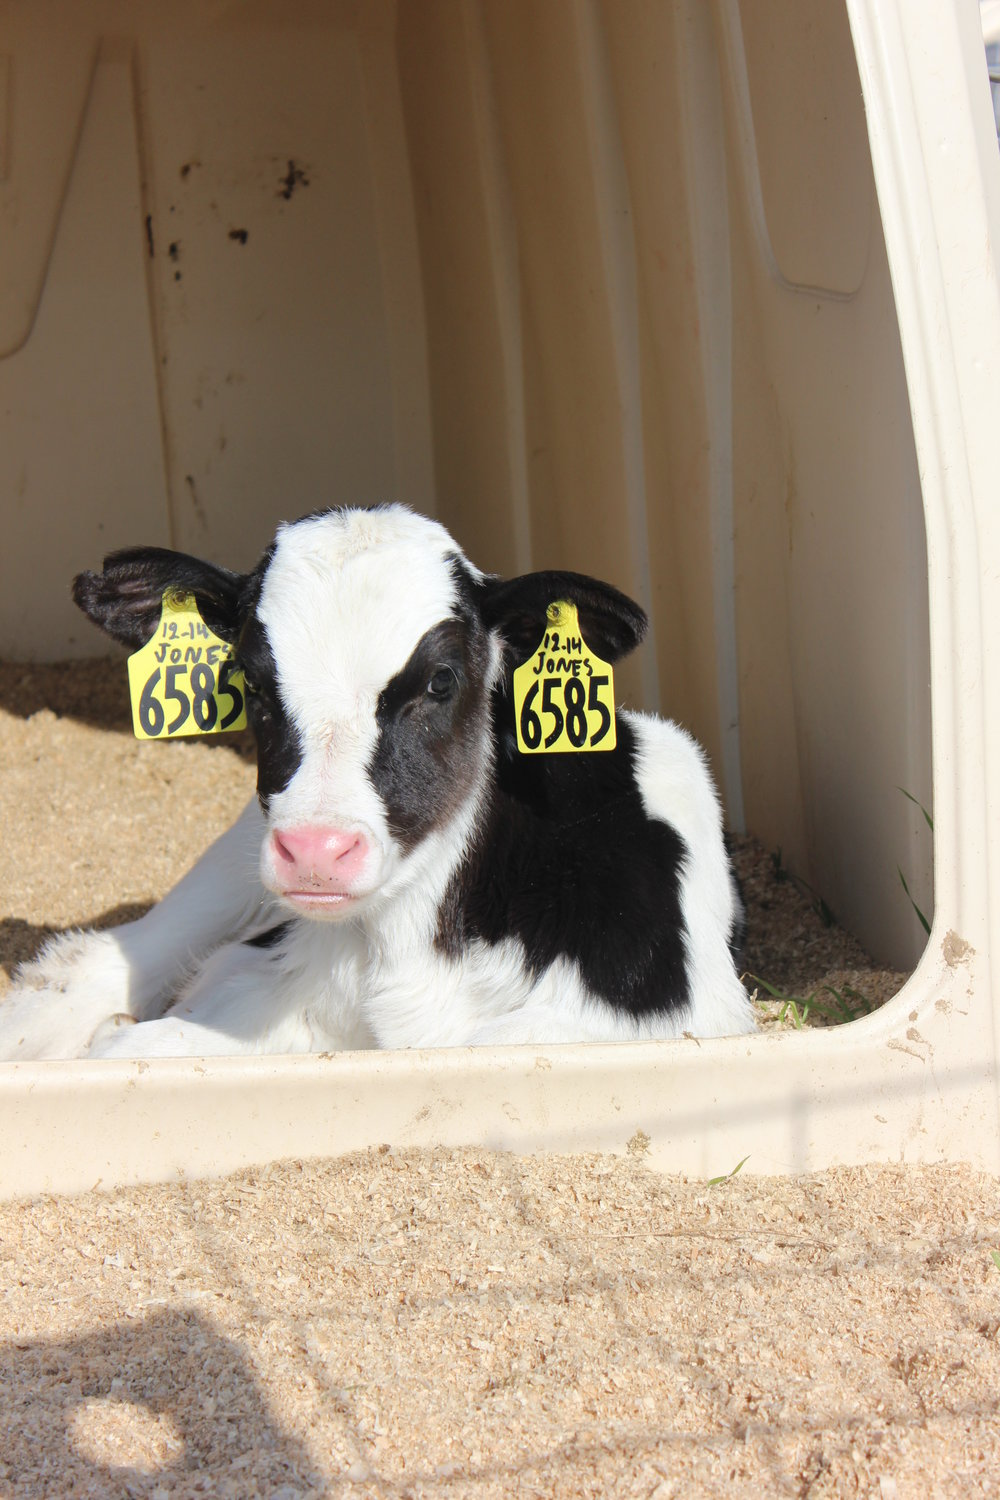 Start them right in the world's leading provider of calf housing solutions. - Strong and durableOpaque for protection from UV raysEasy to clean and sanitizeConstructed for air flow and user efficiencyA healthy choice for healthy calf environments.